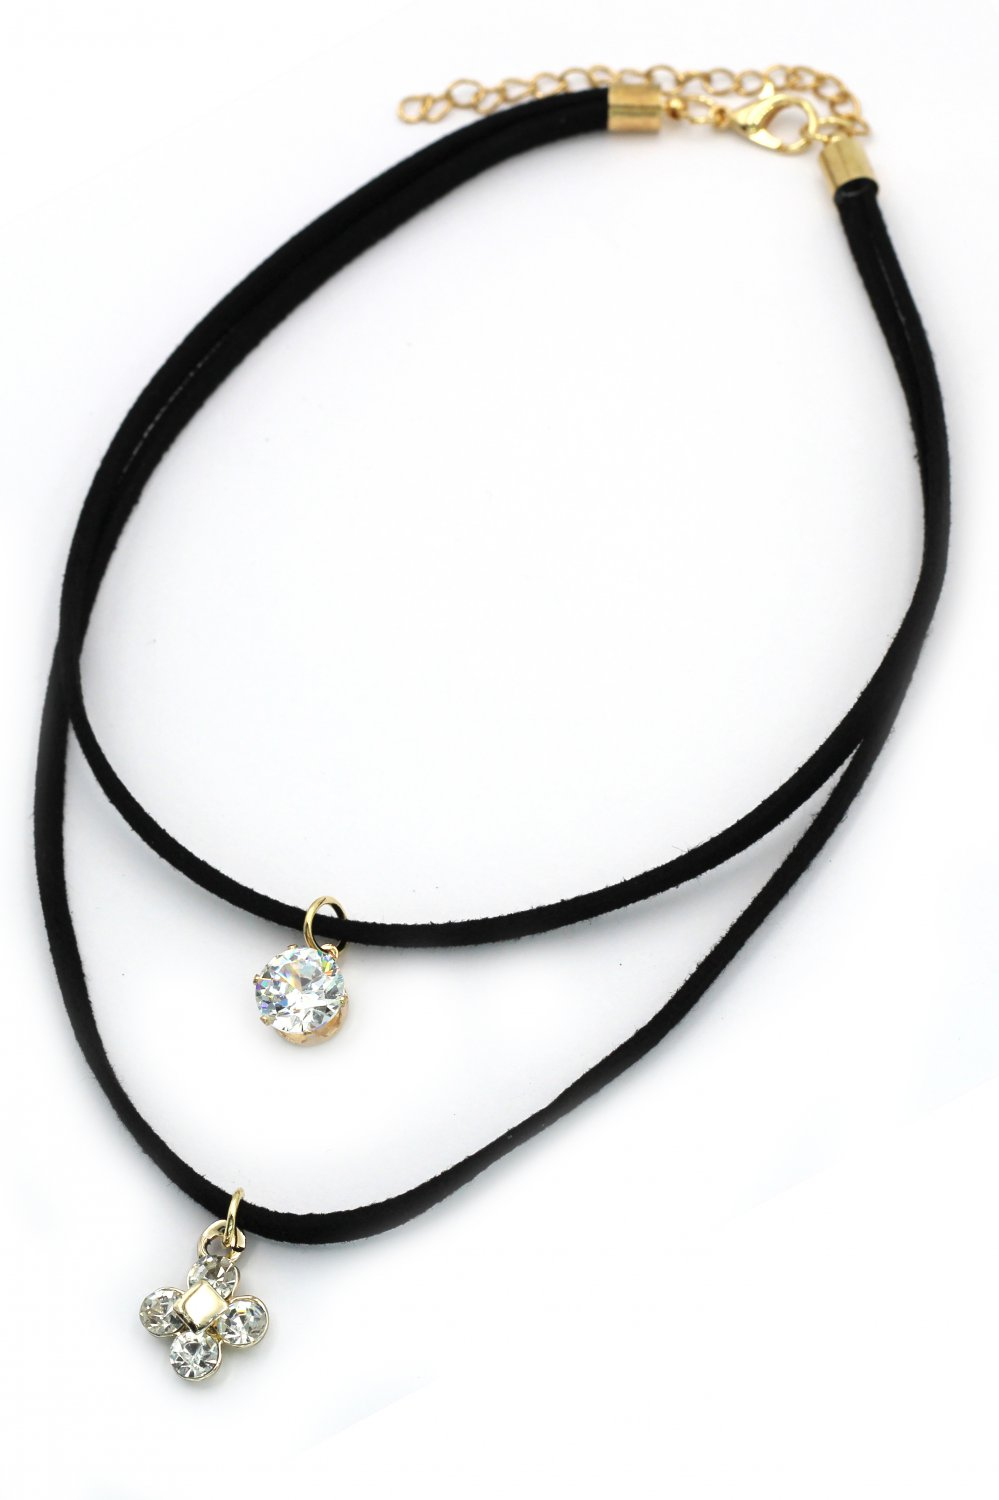 Fashion double-chain crystal and flower pendant black choker